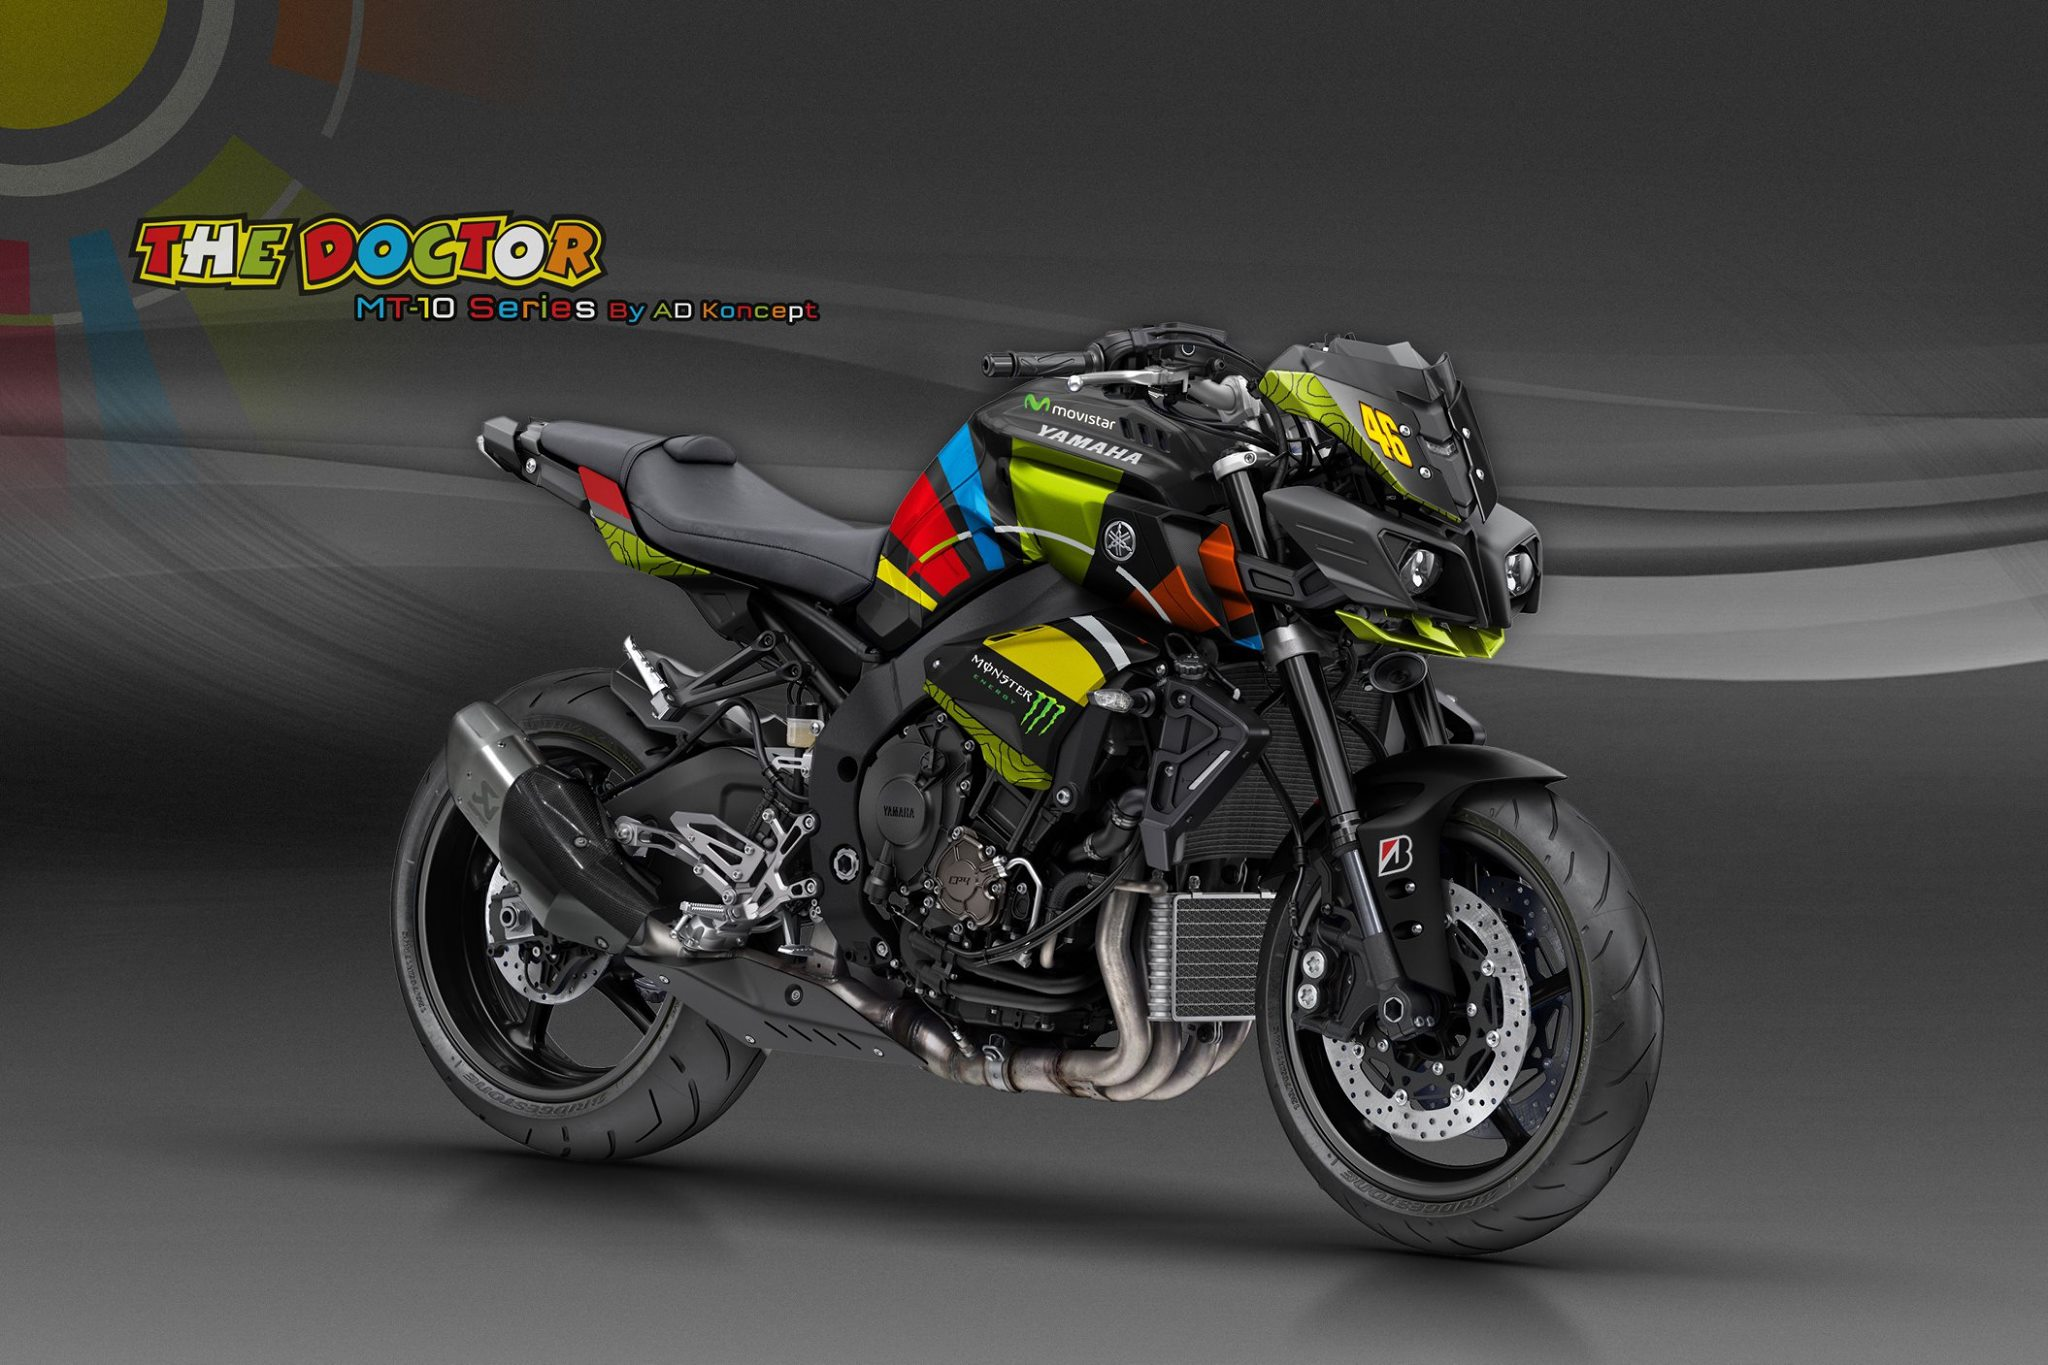 yamaha mt 10 in valentino rossi livery and more from ad koncept 5